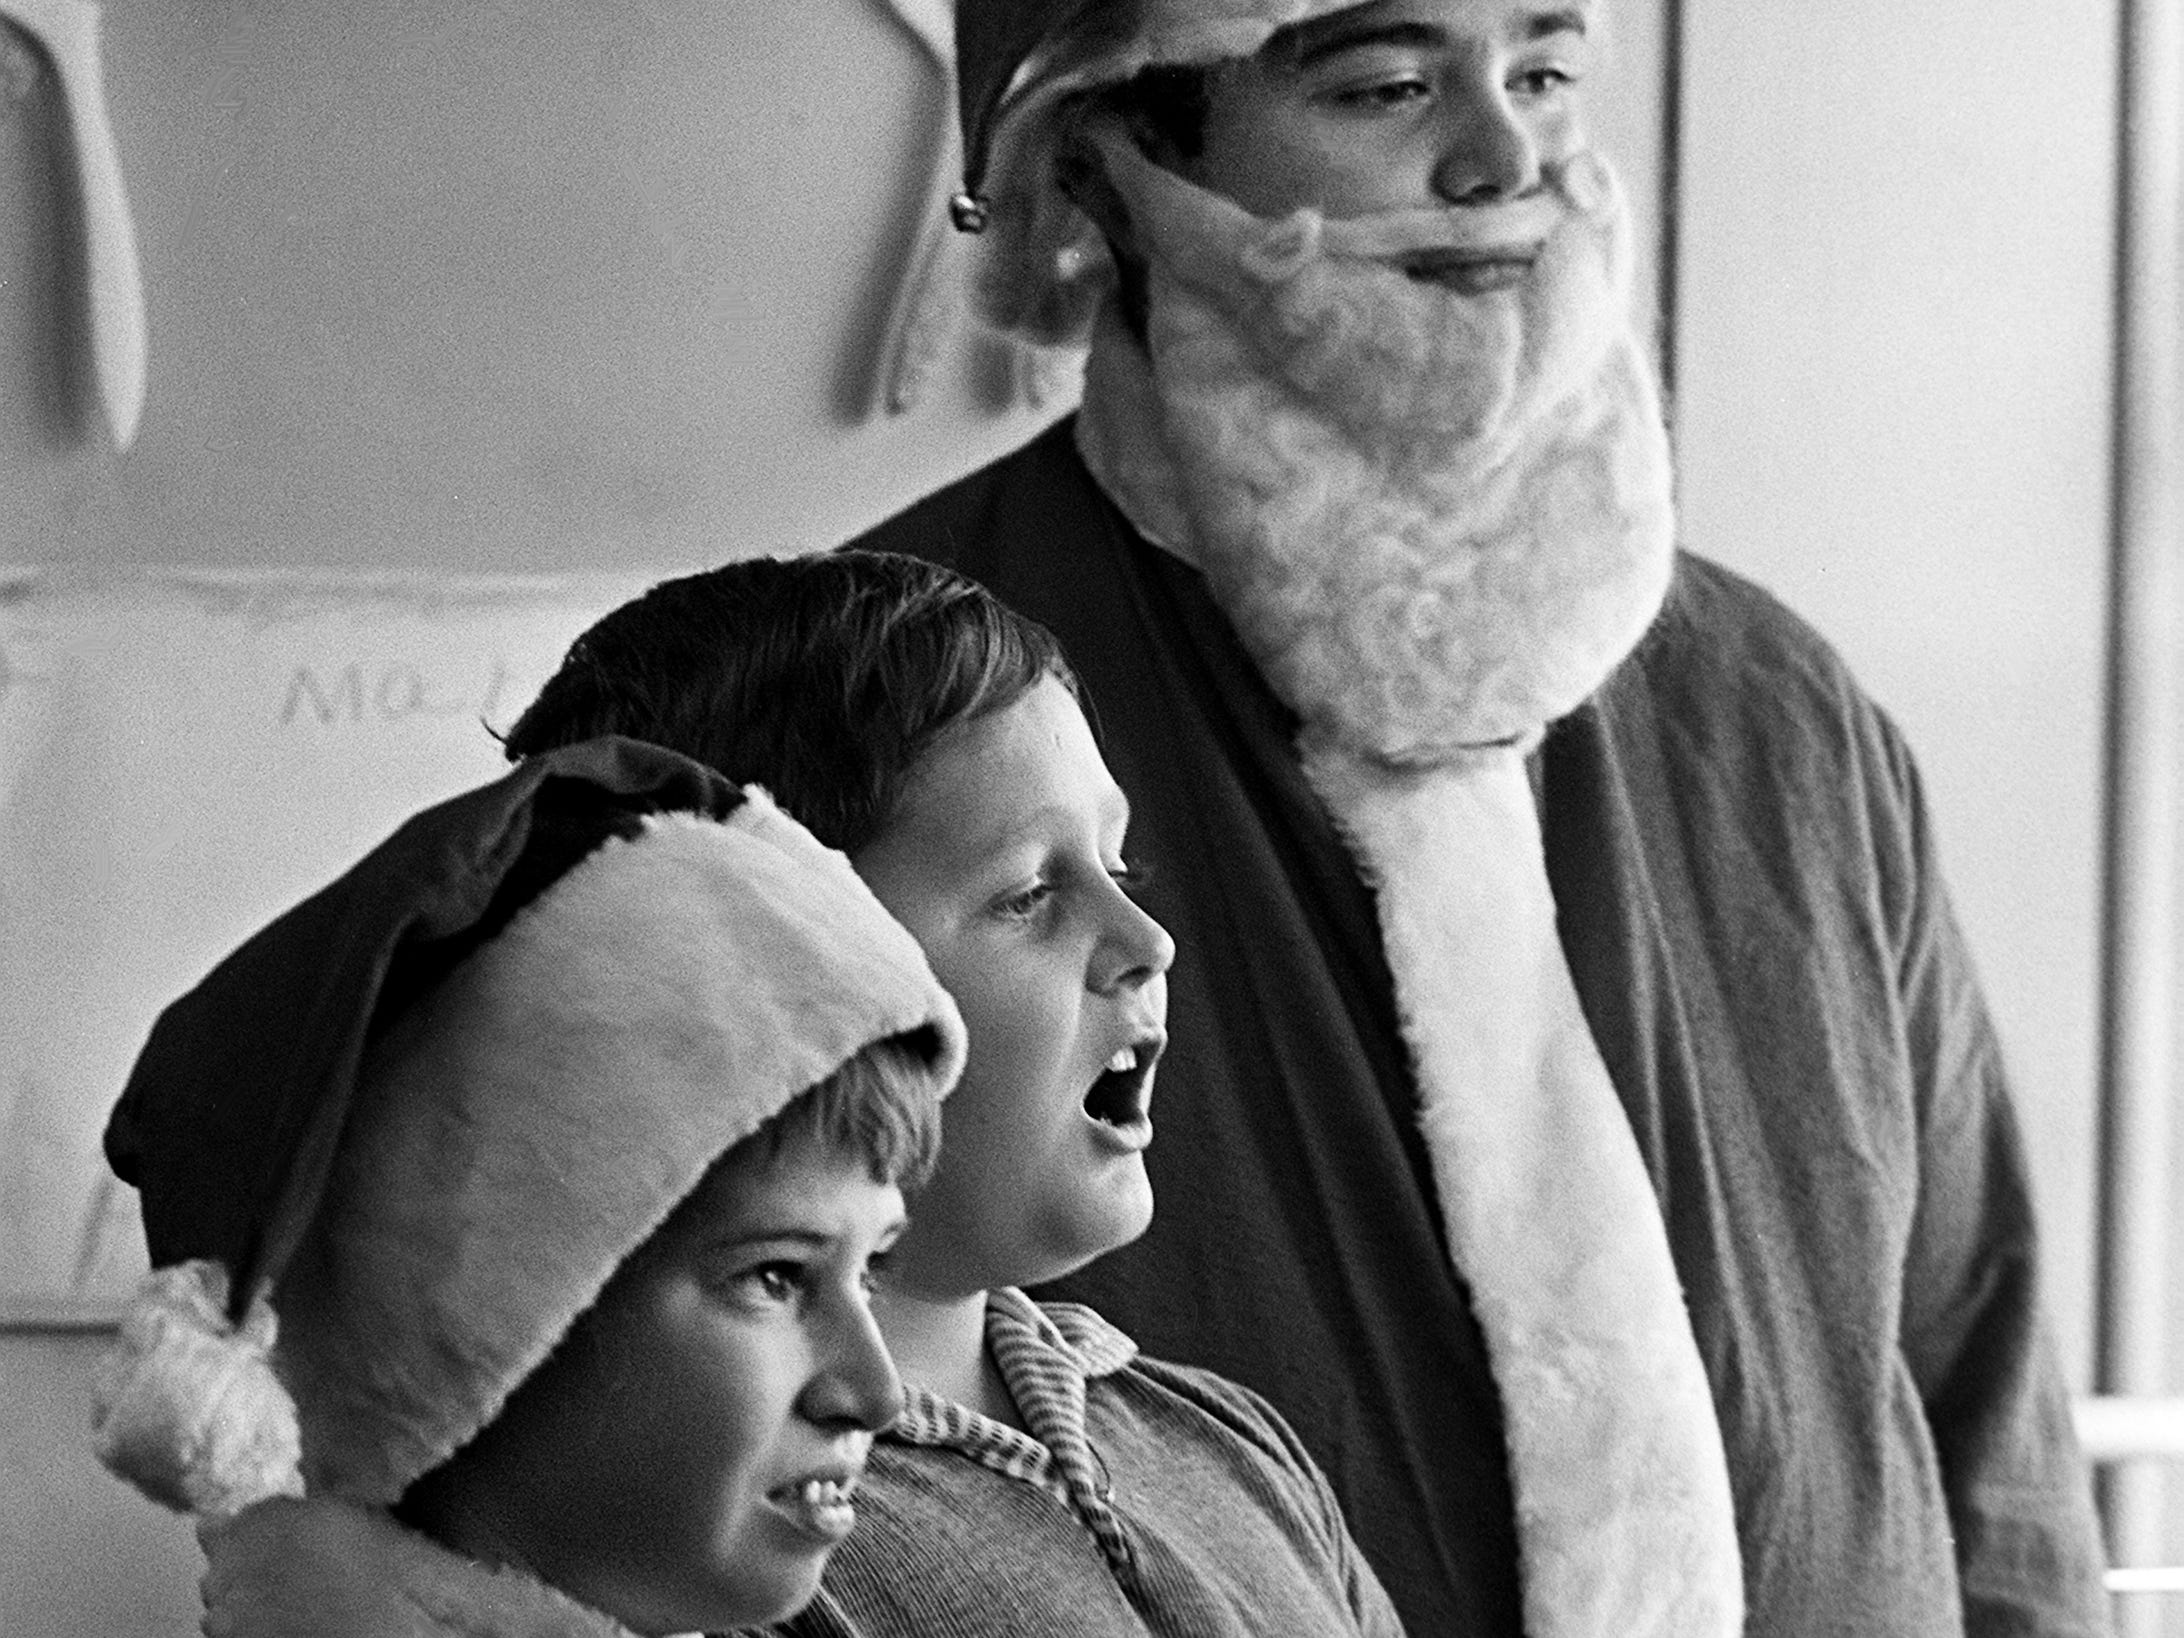 """Students Barry Eubanks, left, 11, Robert Stevens, 10, and Mike Baggett, 13, in special education classes at Jere Baxter Elementary School act out a scene from their Christmas play, """"The Real Santa Claus,"""" Dec. 19, 1968."""